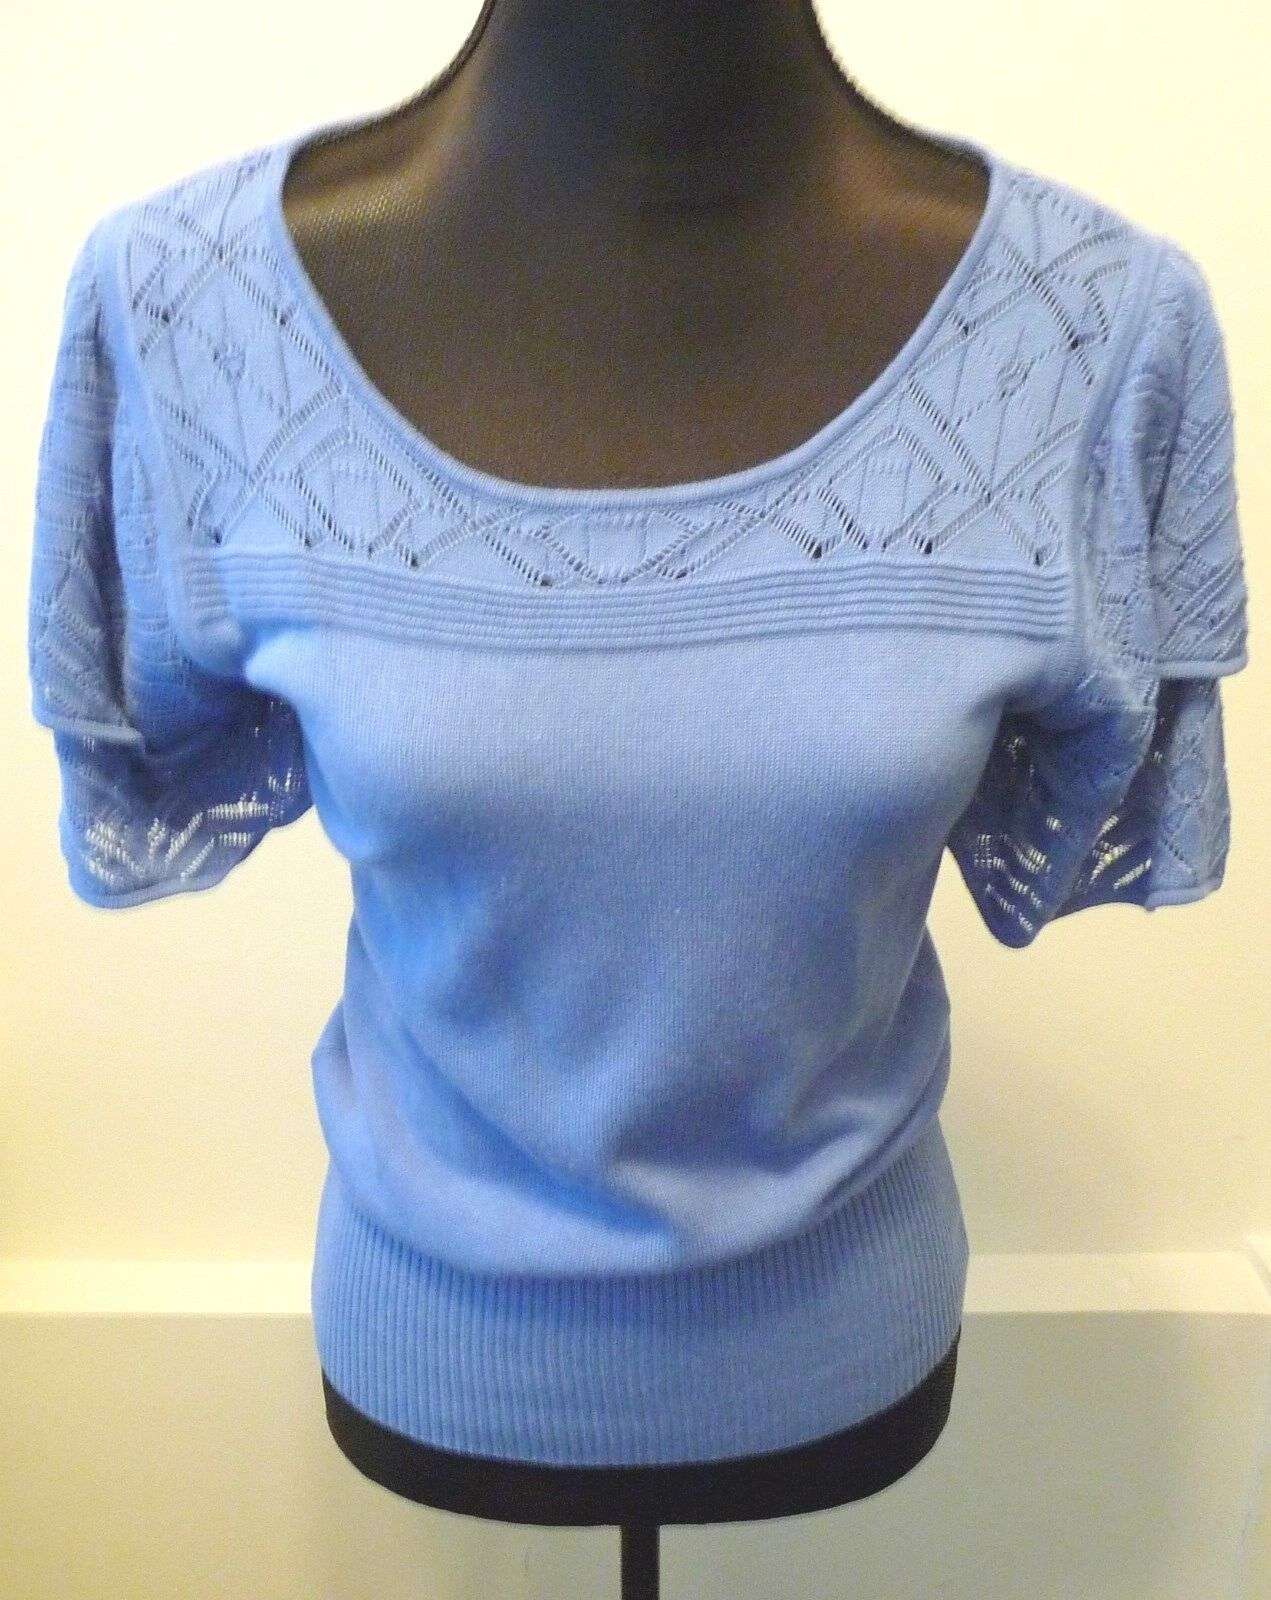 Neiman Marcus NWT bluee Cotton Knit Short Flutter Sleeve Sweater Size Small